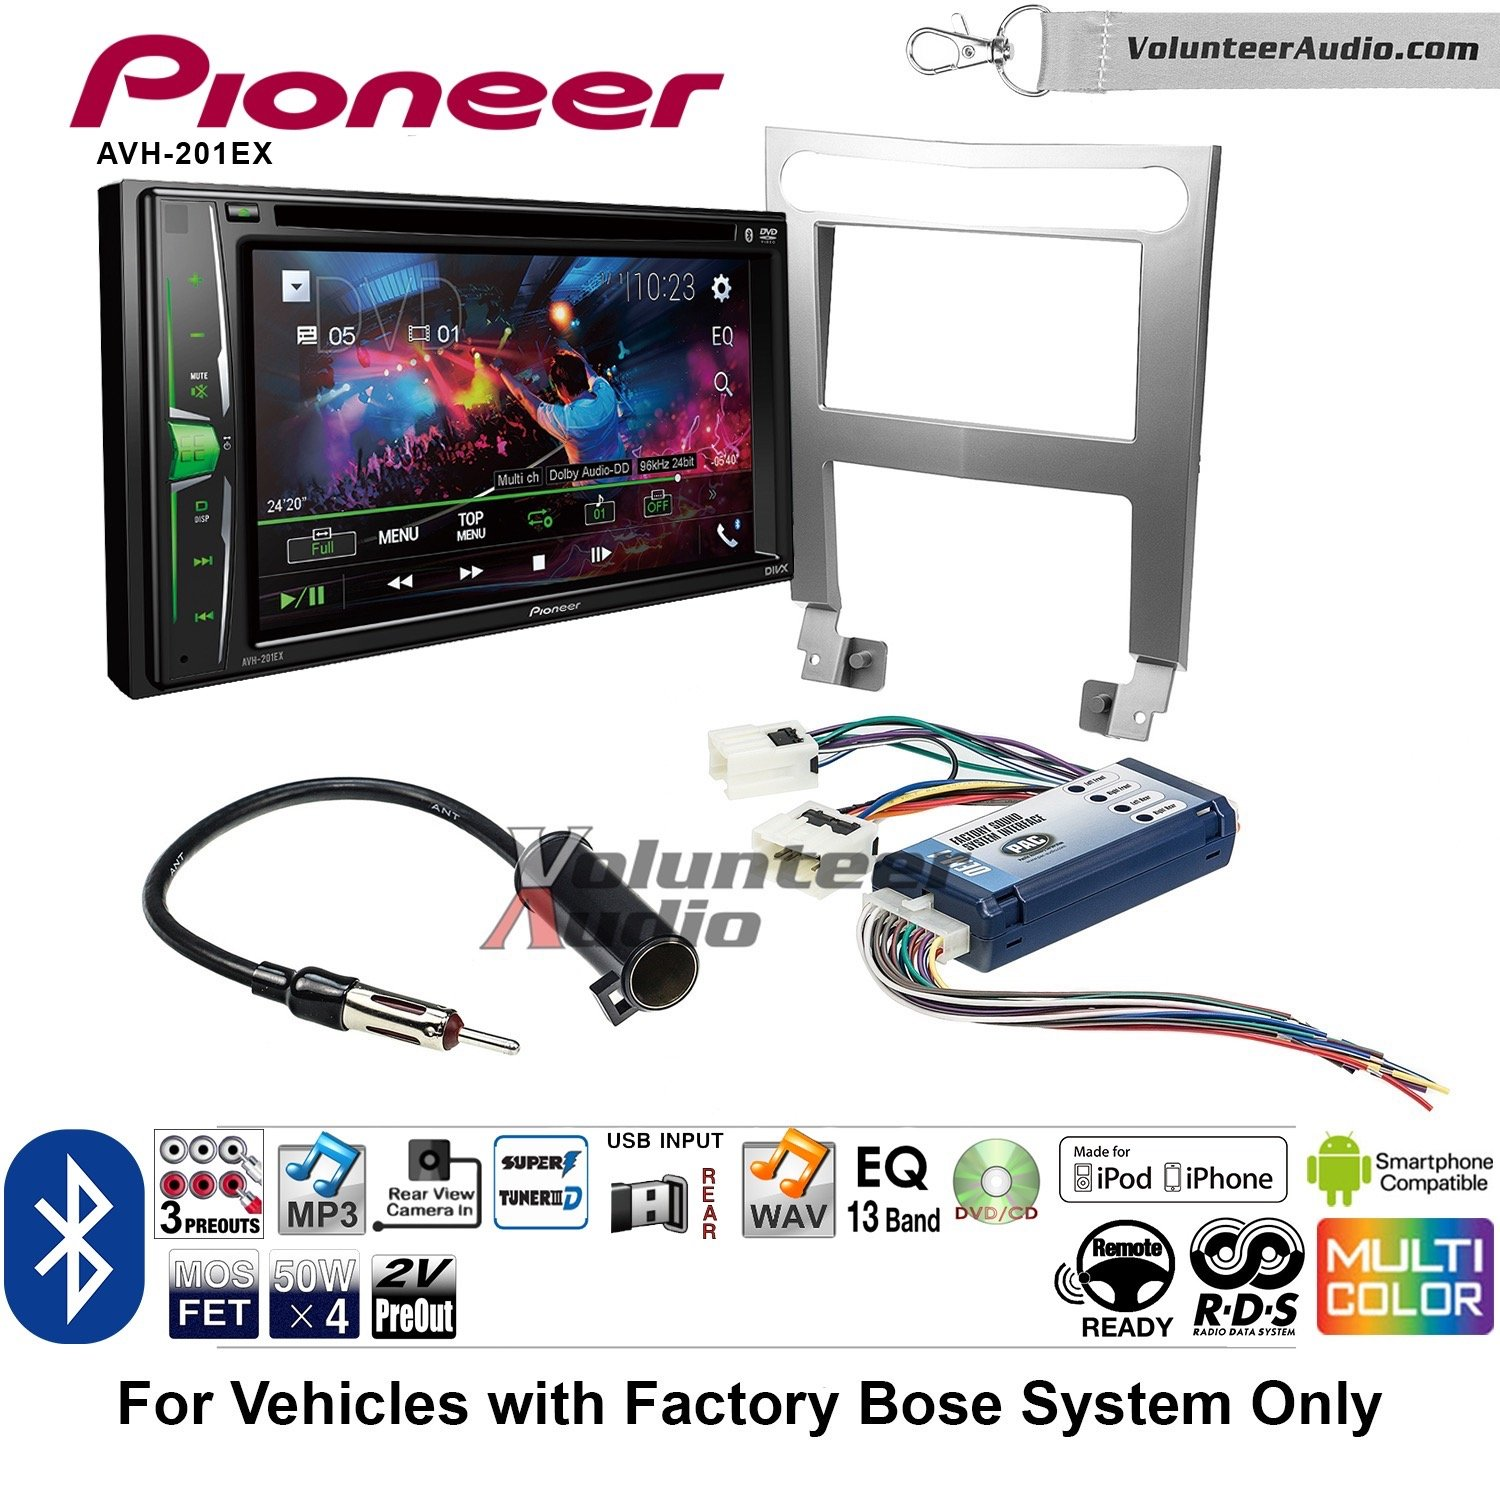 Volunteer Audio Pioneer AVH-201EX Double Din Radio Install Kit with CD Player Bluetooth USB/AUX Fits 2004-2006 Nissan Maxima (With Bose)